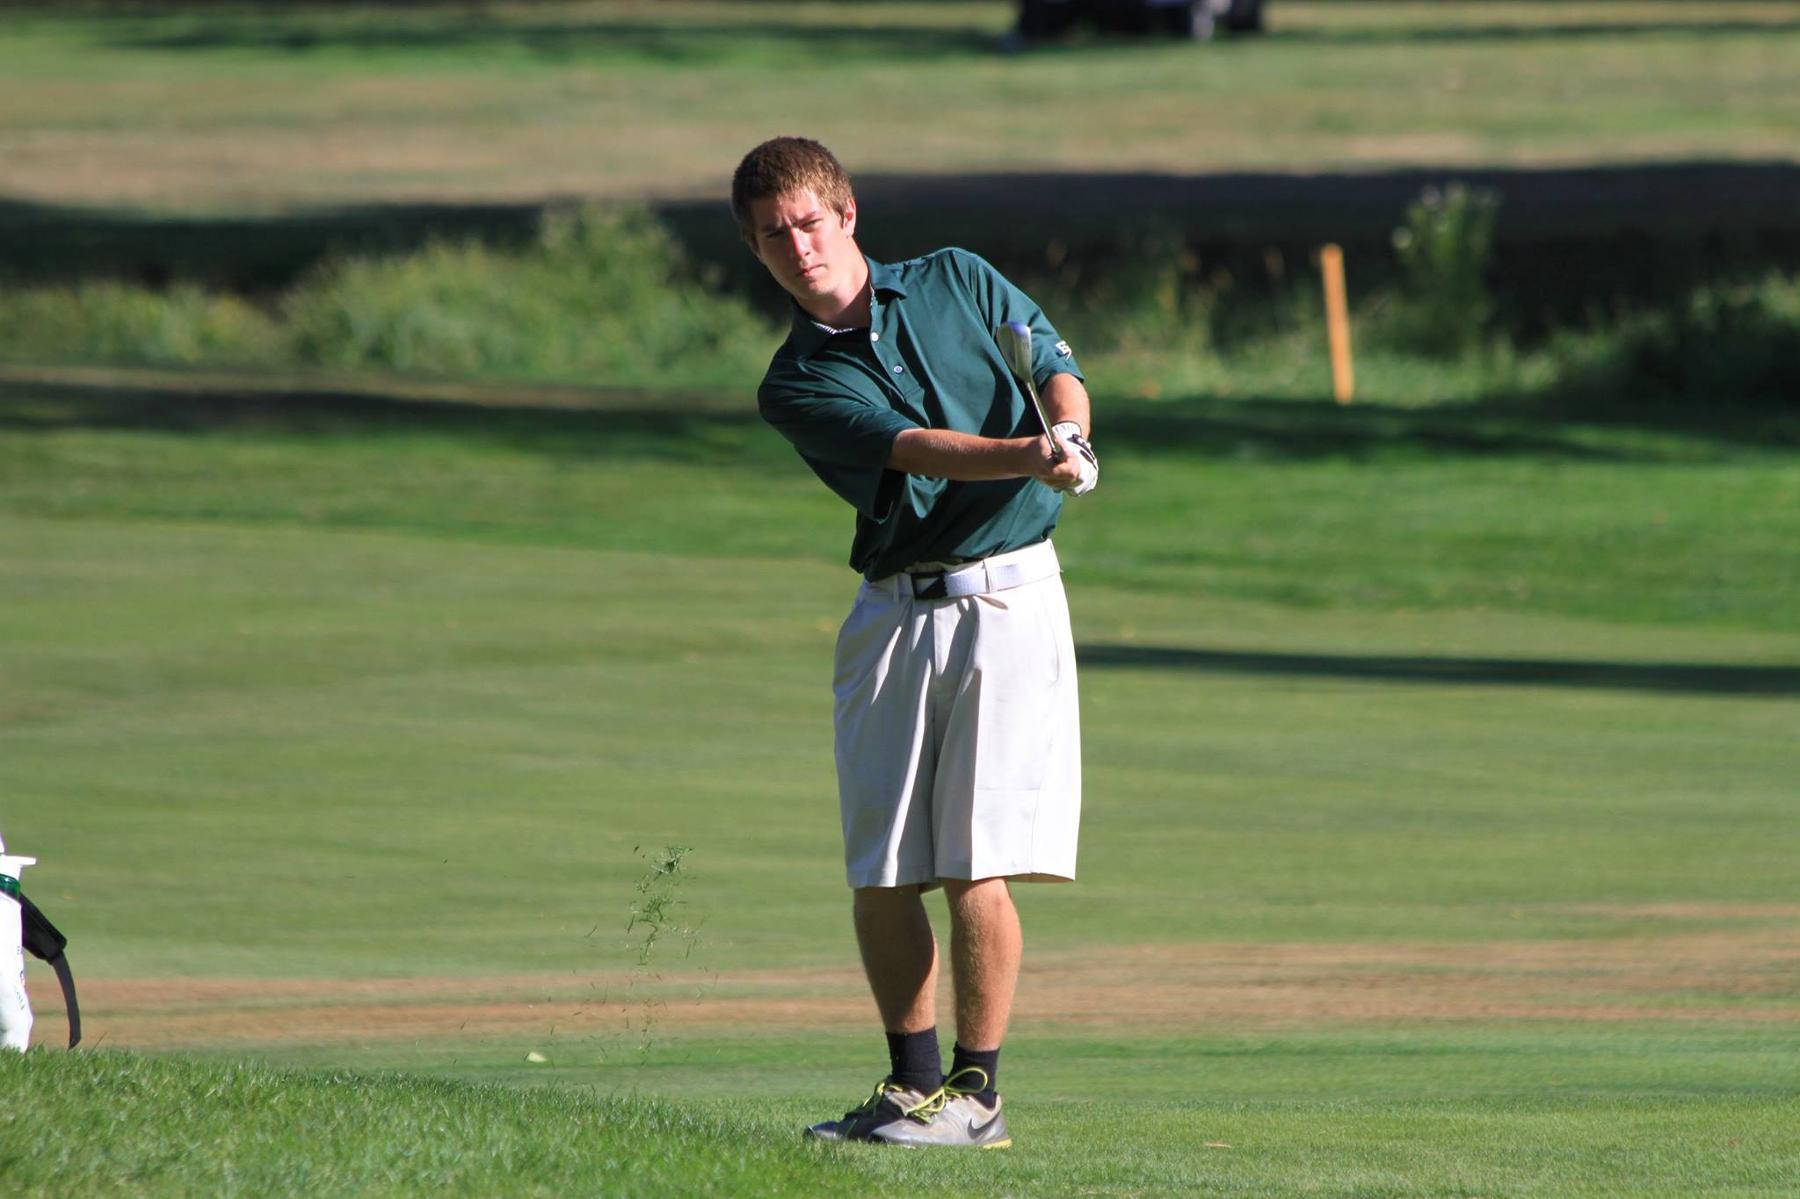 Men's Golf 16th After 18 Holes At Williams Invitational